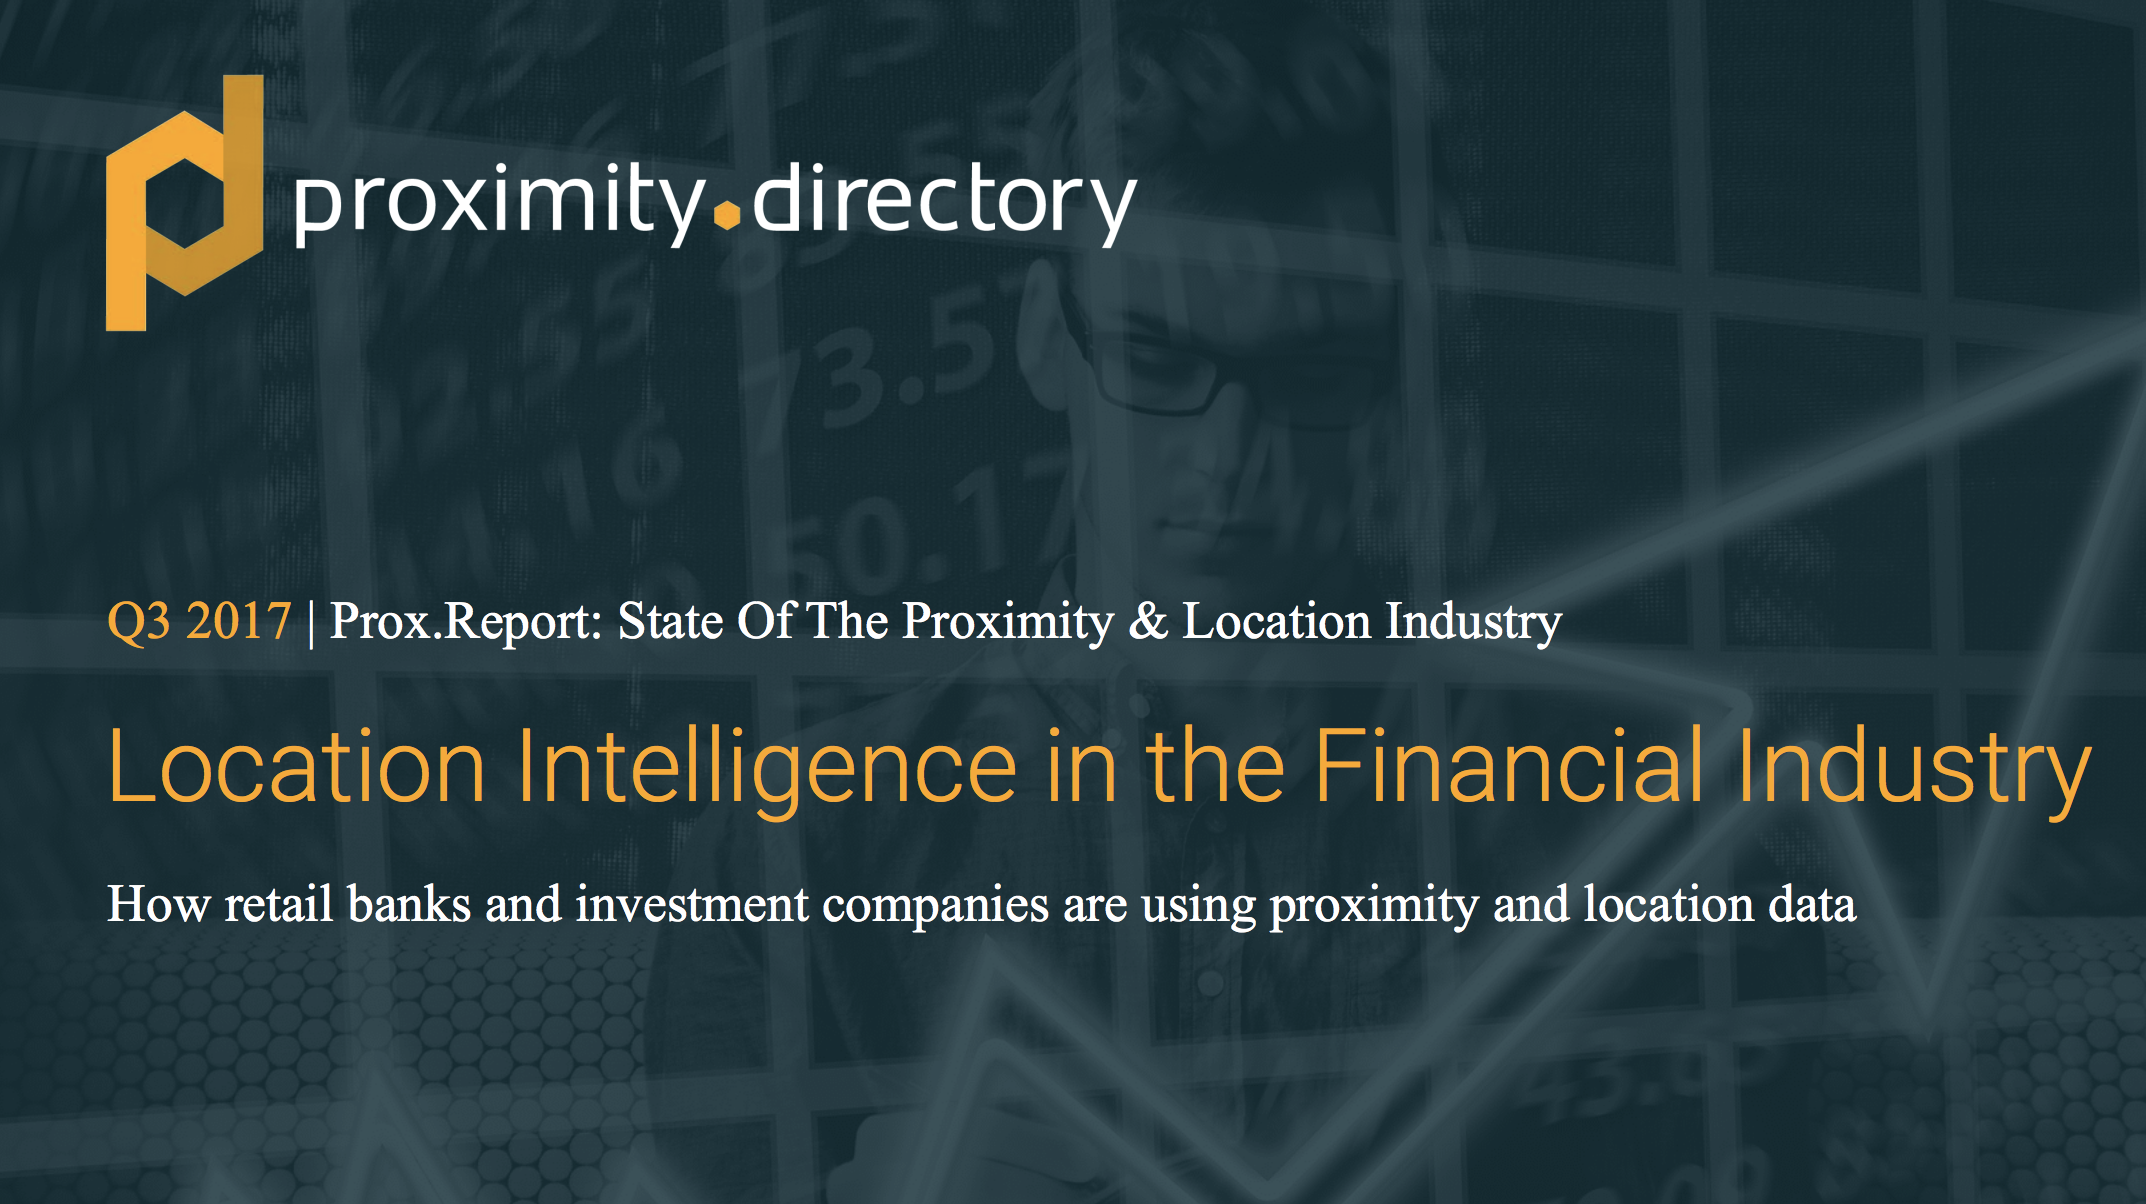 Location Intelligence in the Financial Industry - The Q3 2017 Prox.Report